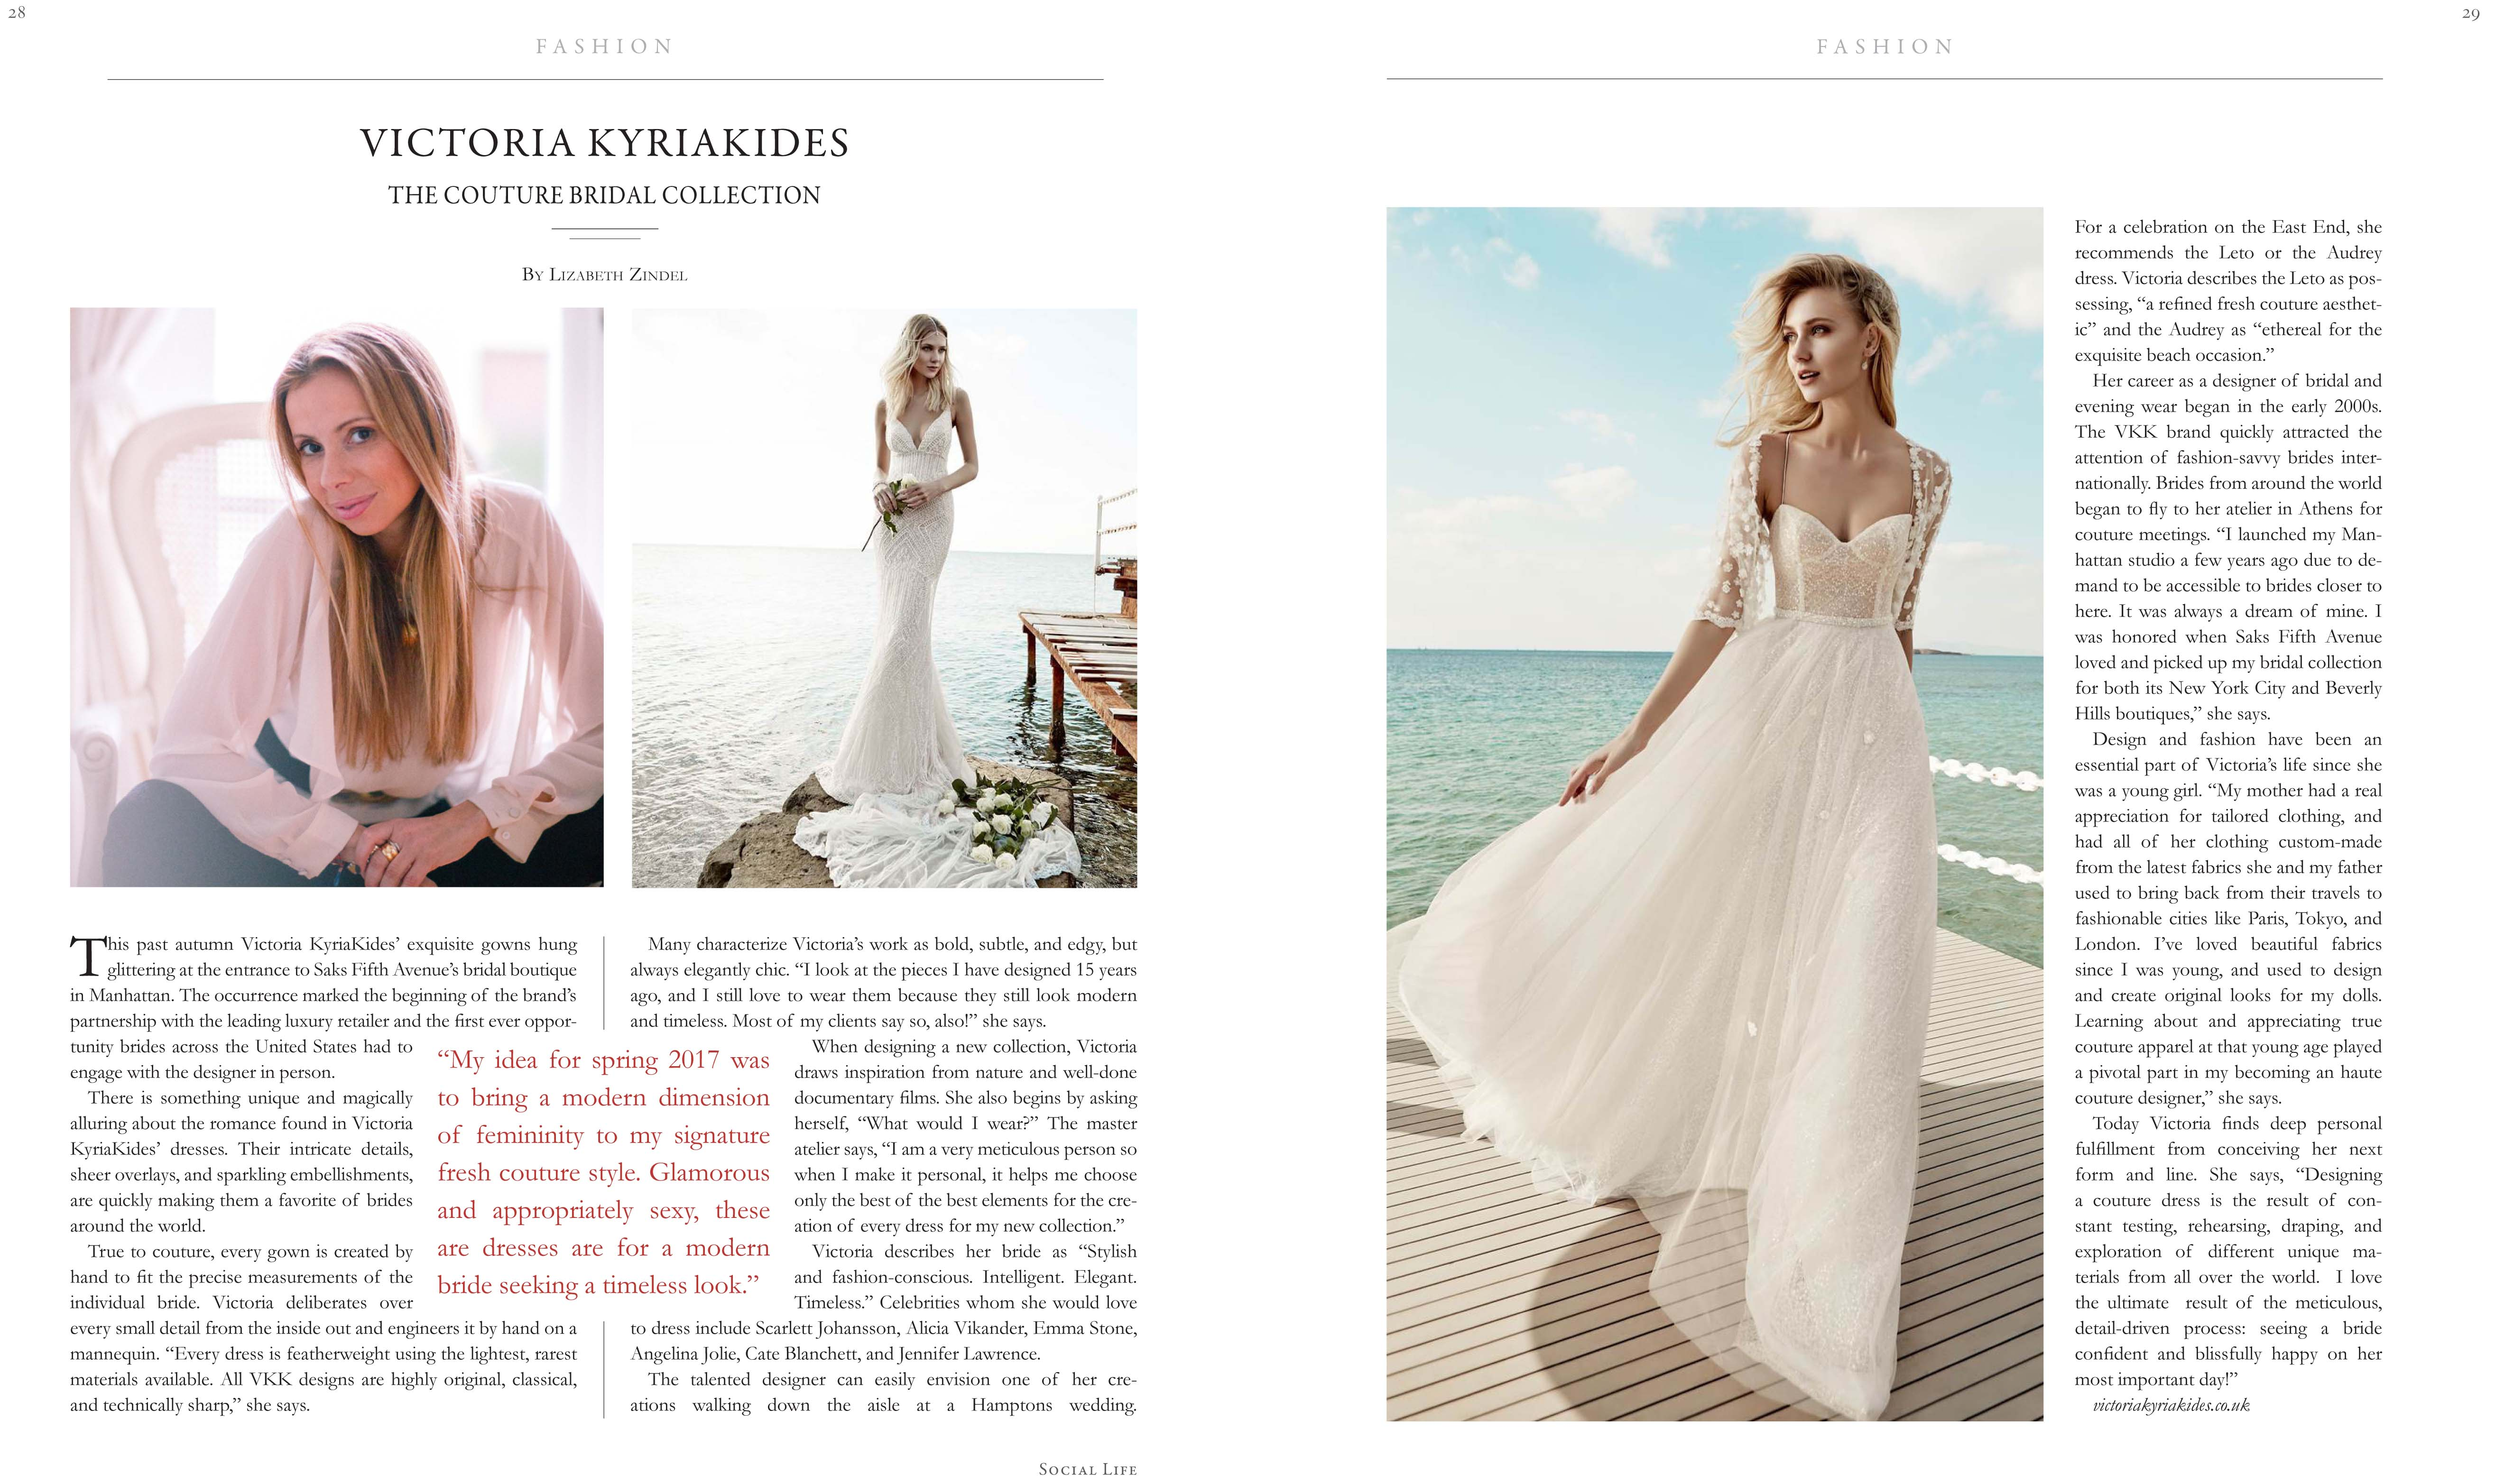 c4ff23df327 VICTORIA KYRIAKIDES THE COUTURE BRIDAL COLLECTION - Social Life ...